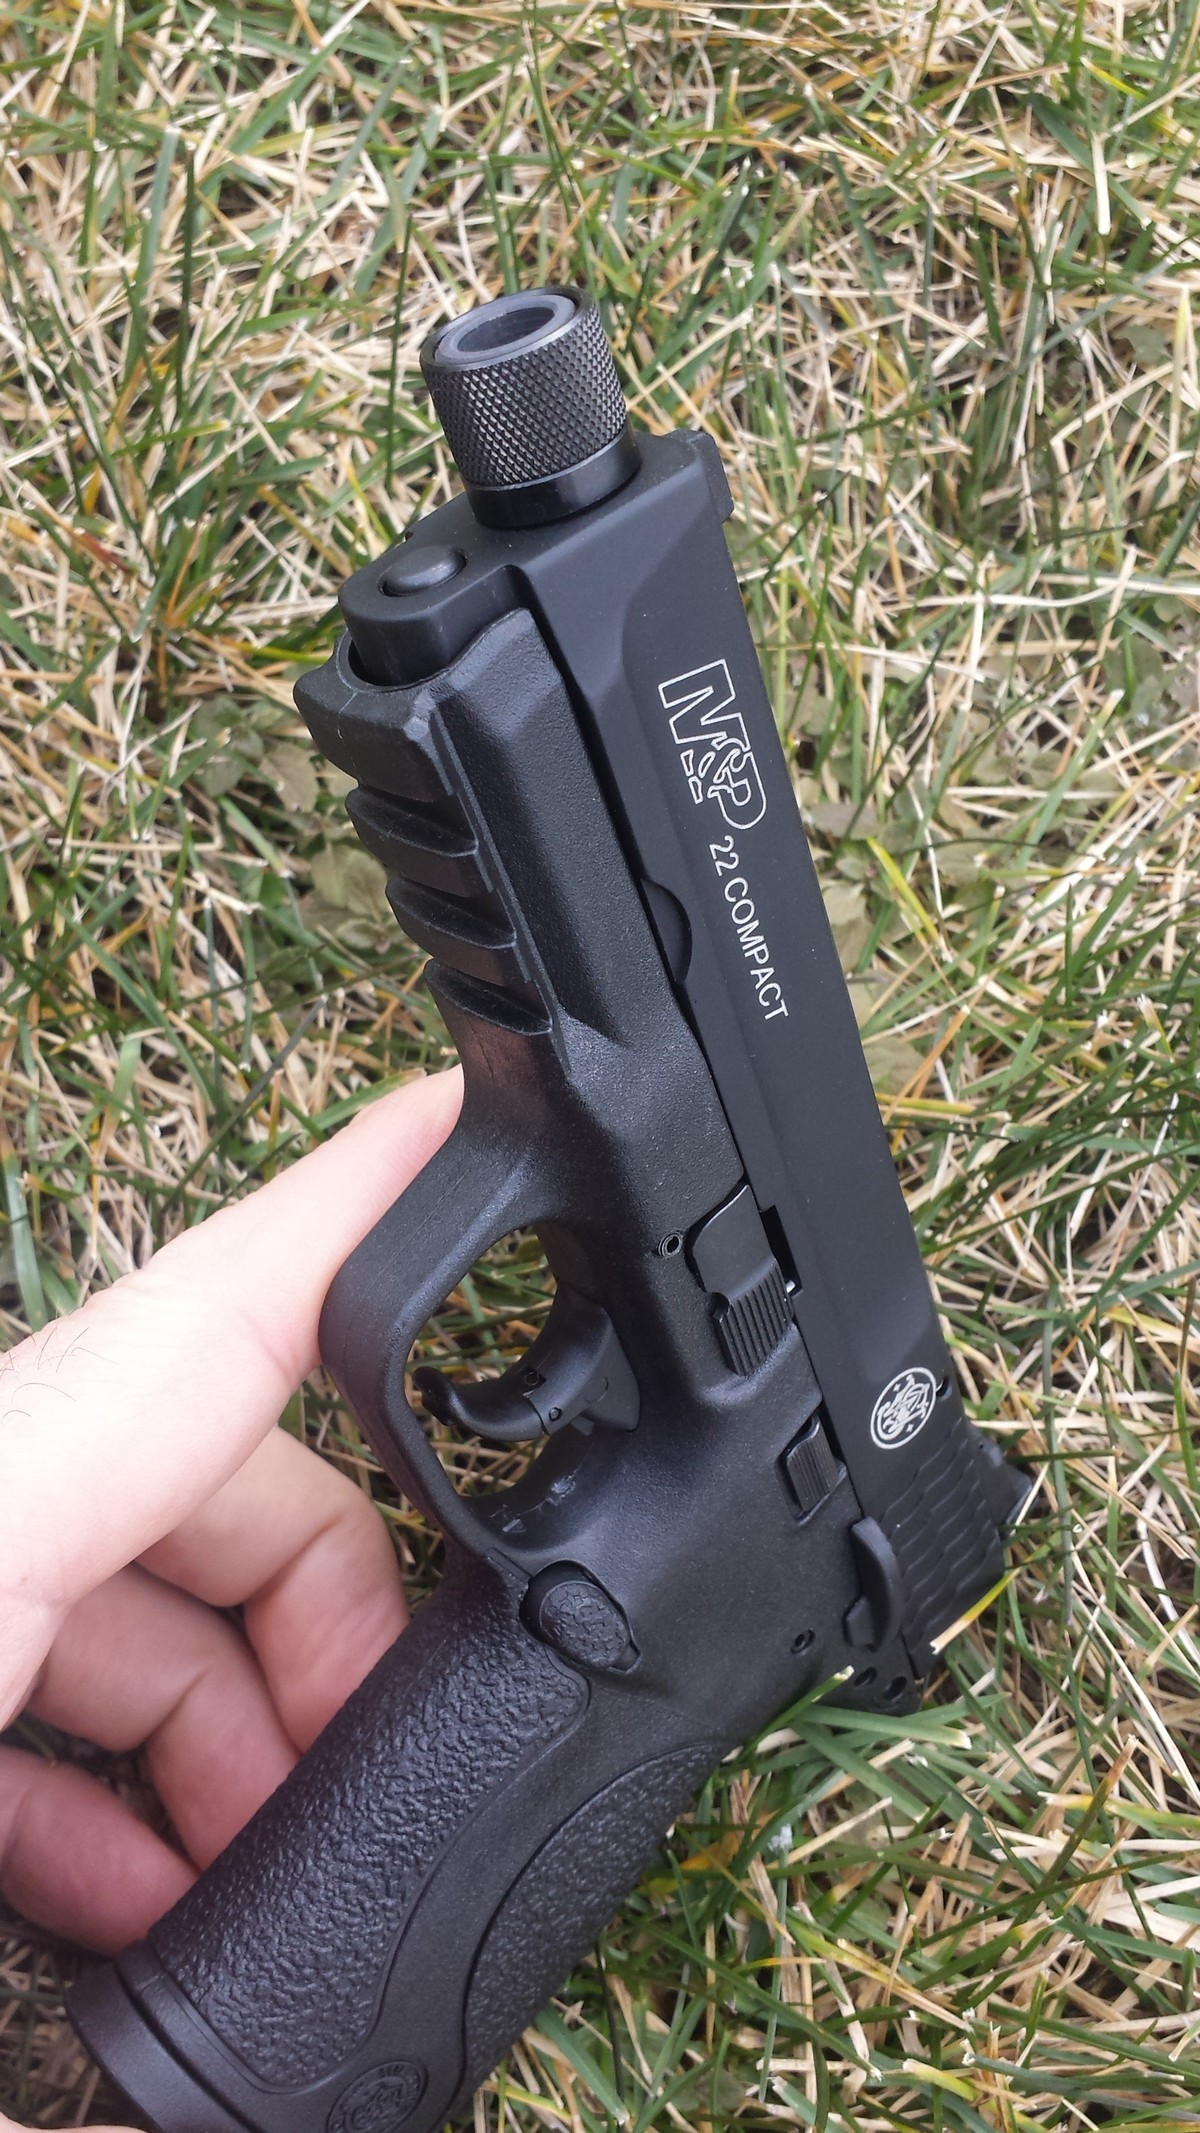 hight resolution of other features of the m p 22 compact include and 1913 rail reversible magazine release ambidextrous manual thumb safety and a interior trigger lock